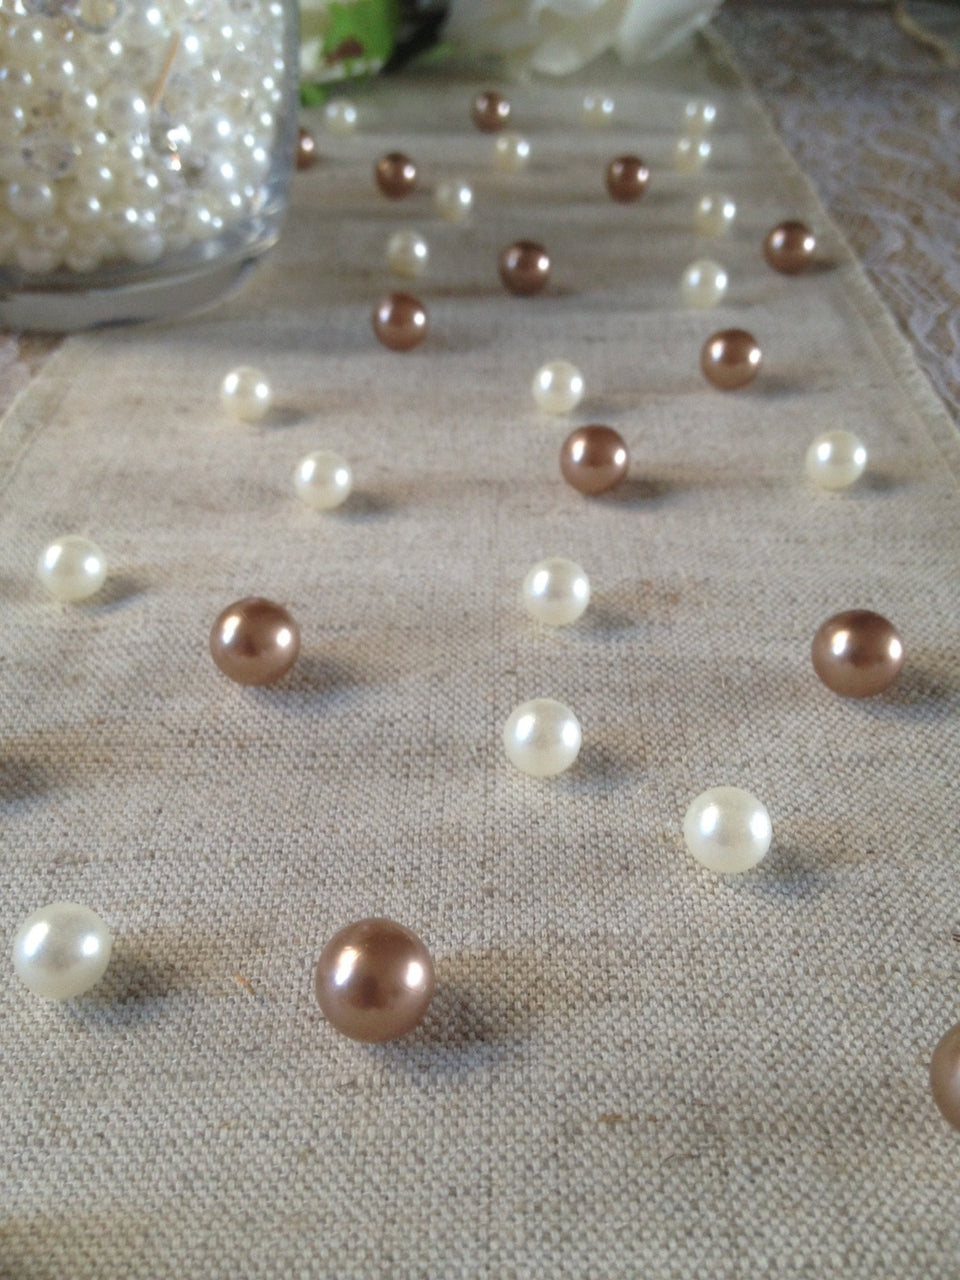 Vintage Table Pearl Scatters Copper Brown And Ivory  Pearls For Wedding, Parties, Special Events Decor Table Confetti